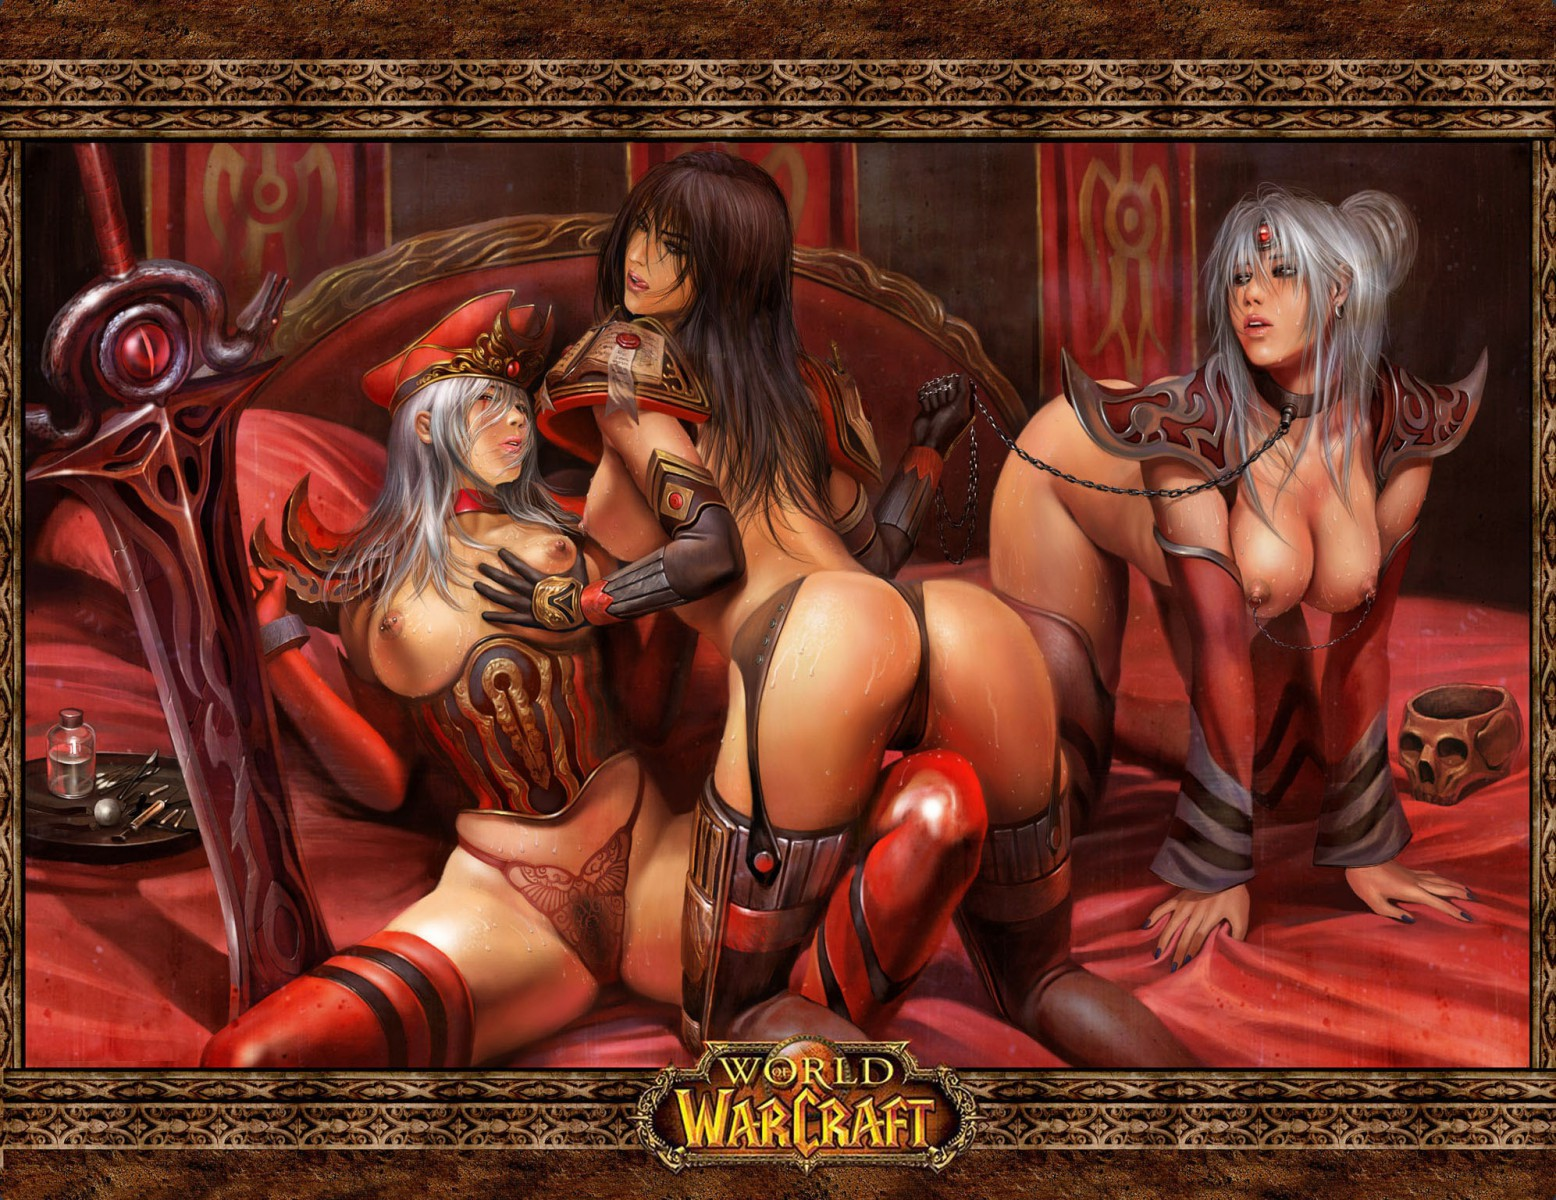 World of warcraft lesbian porn videos sex tube